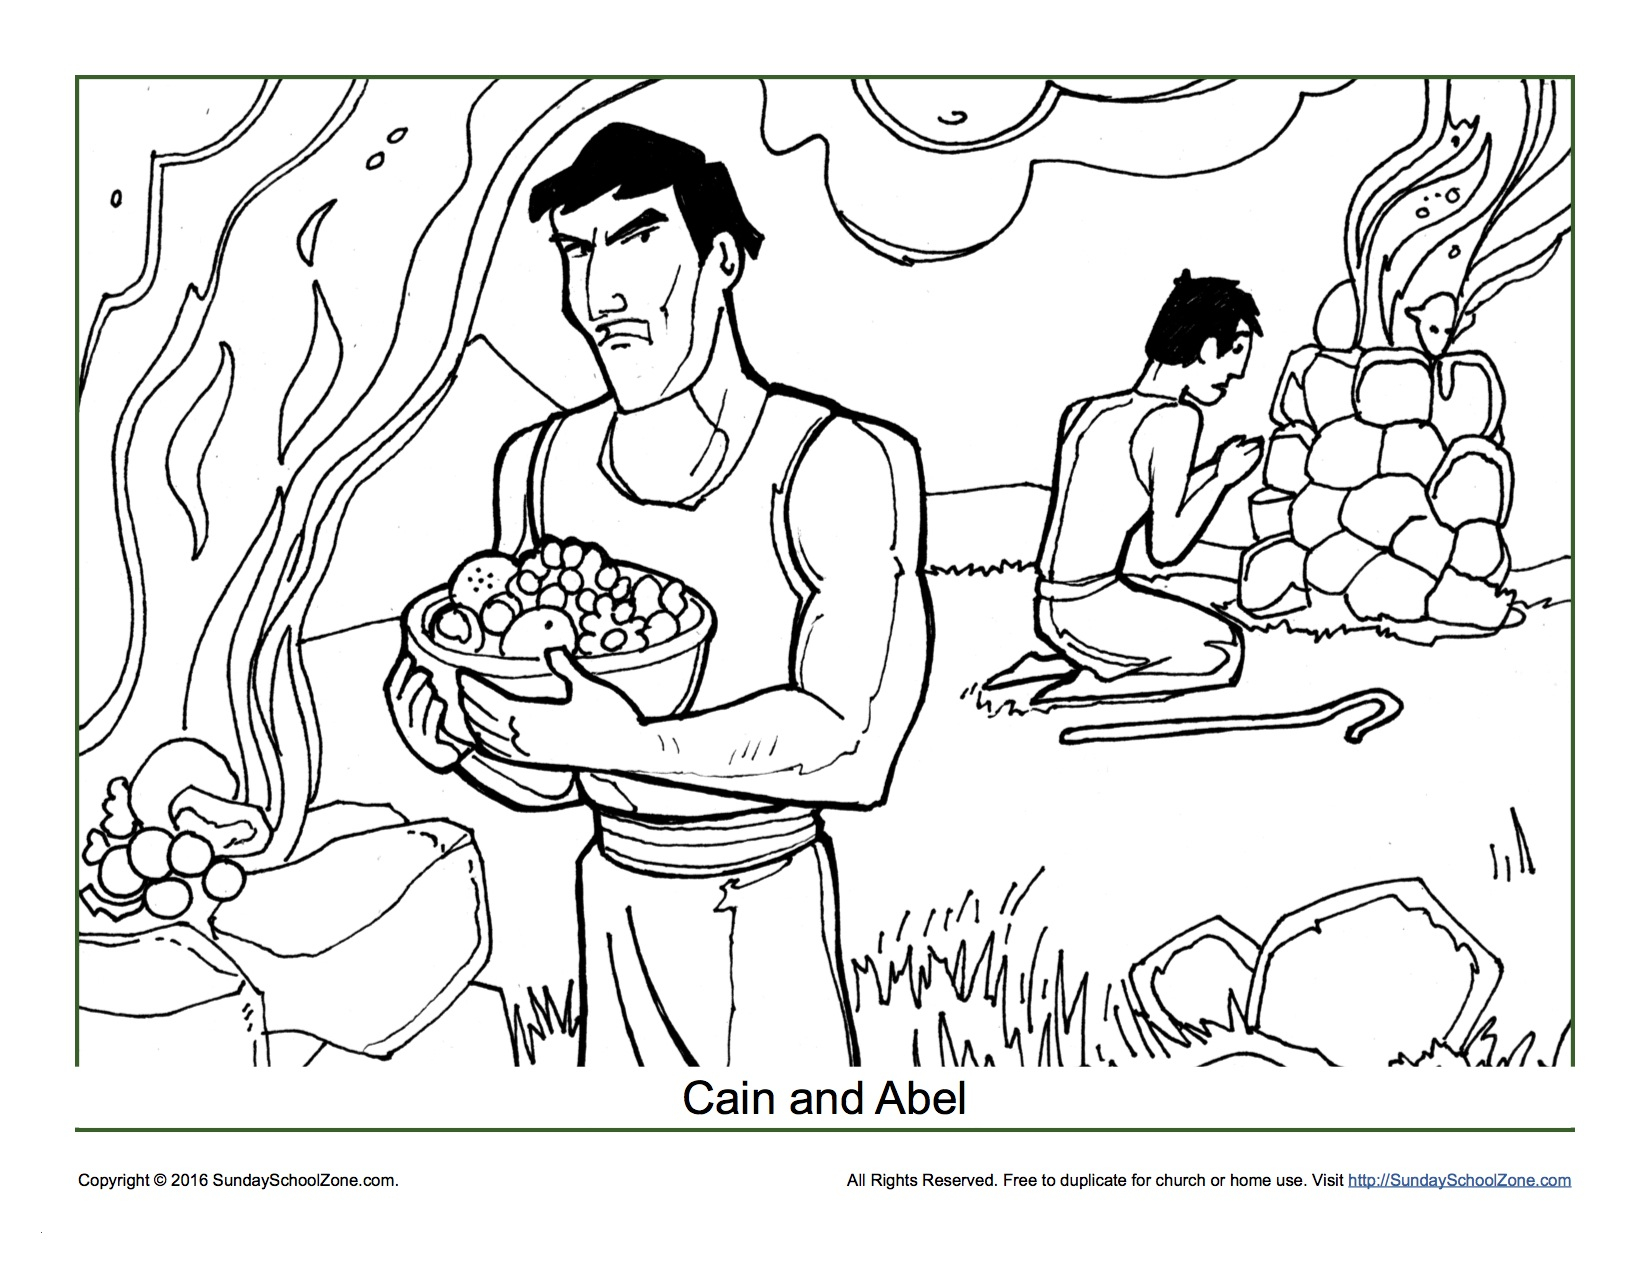 Cain and Abel Coloring Pages  to Print 3s - Free For Children